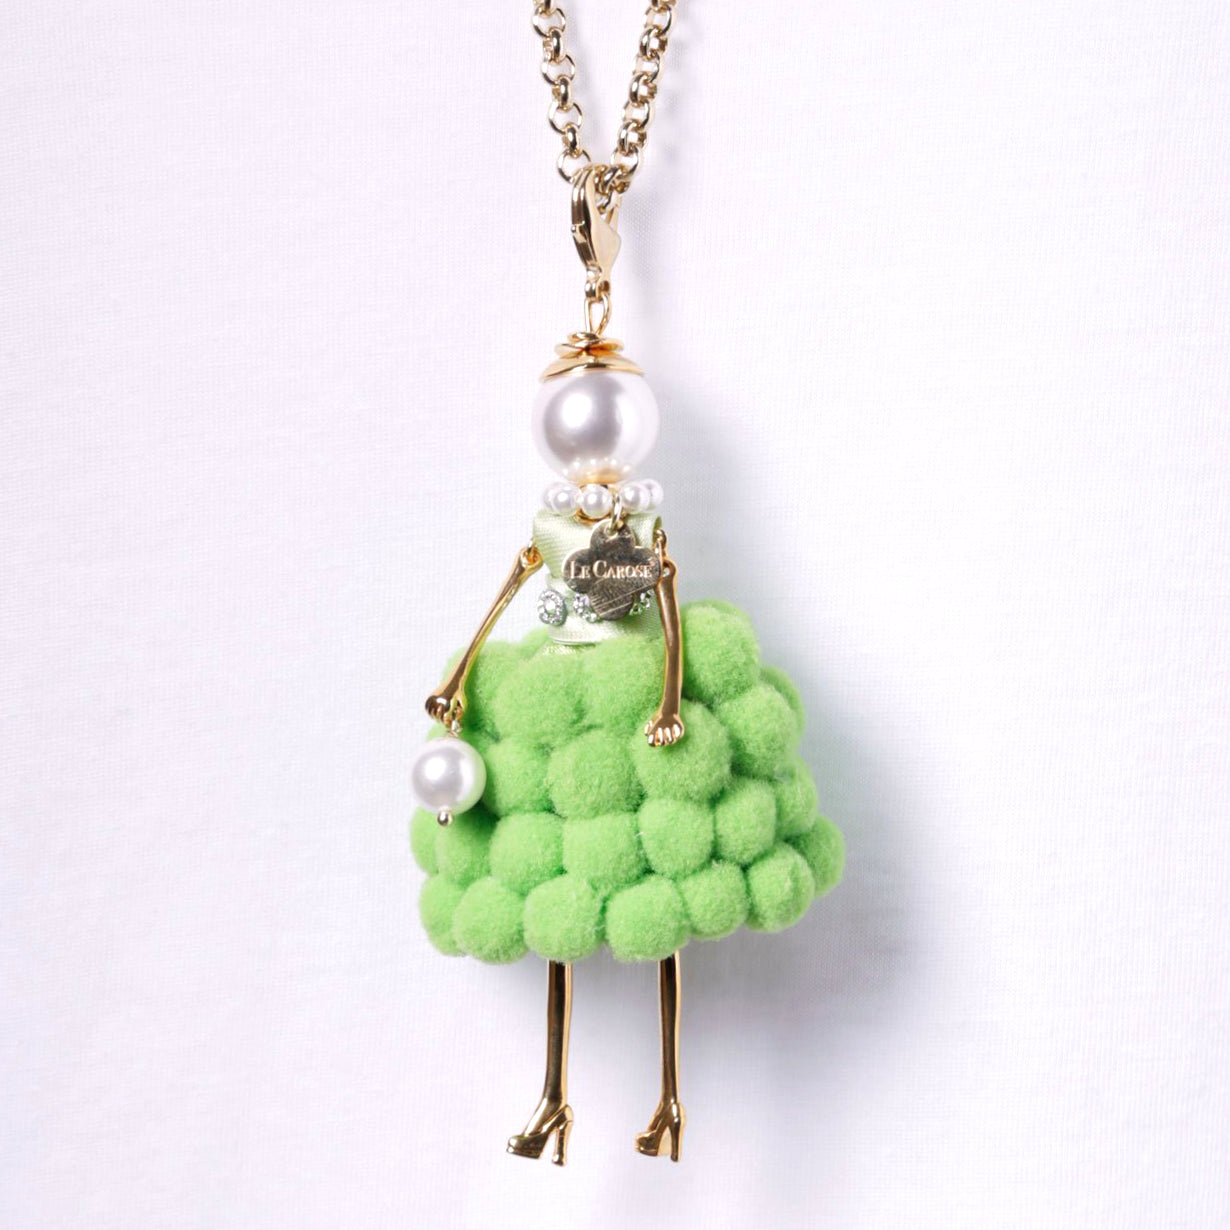 LE CAROSE NECKLACE, POM POM GREEN